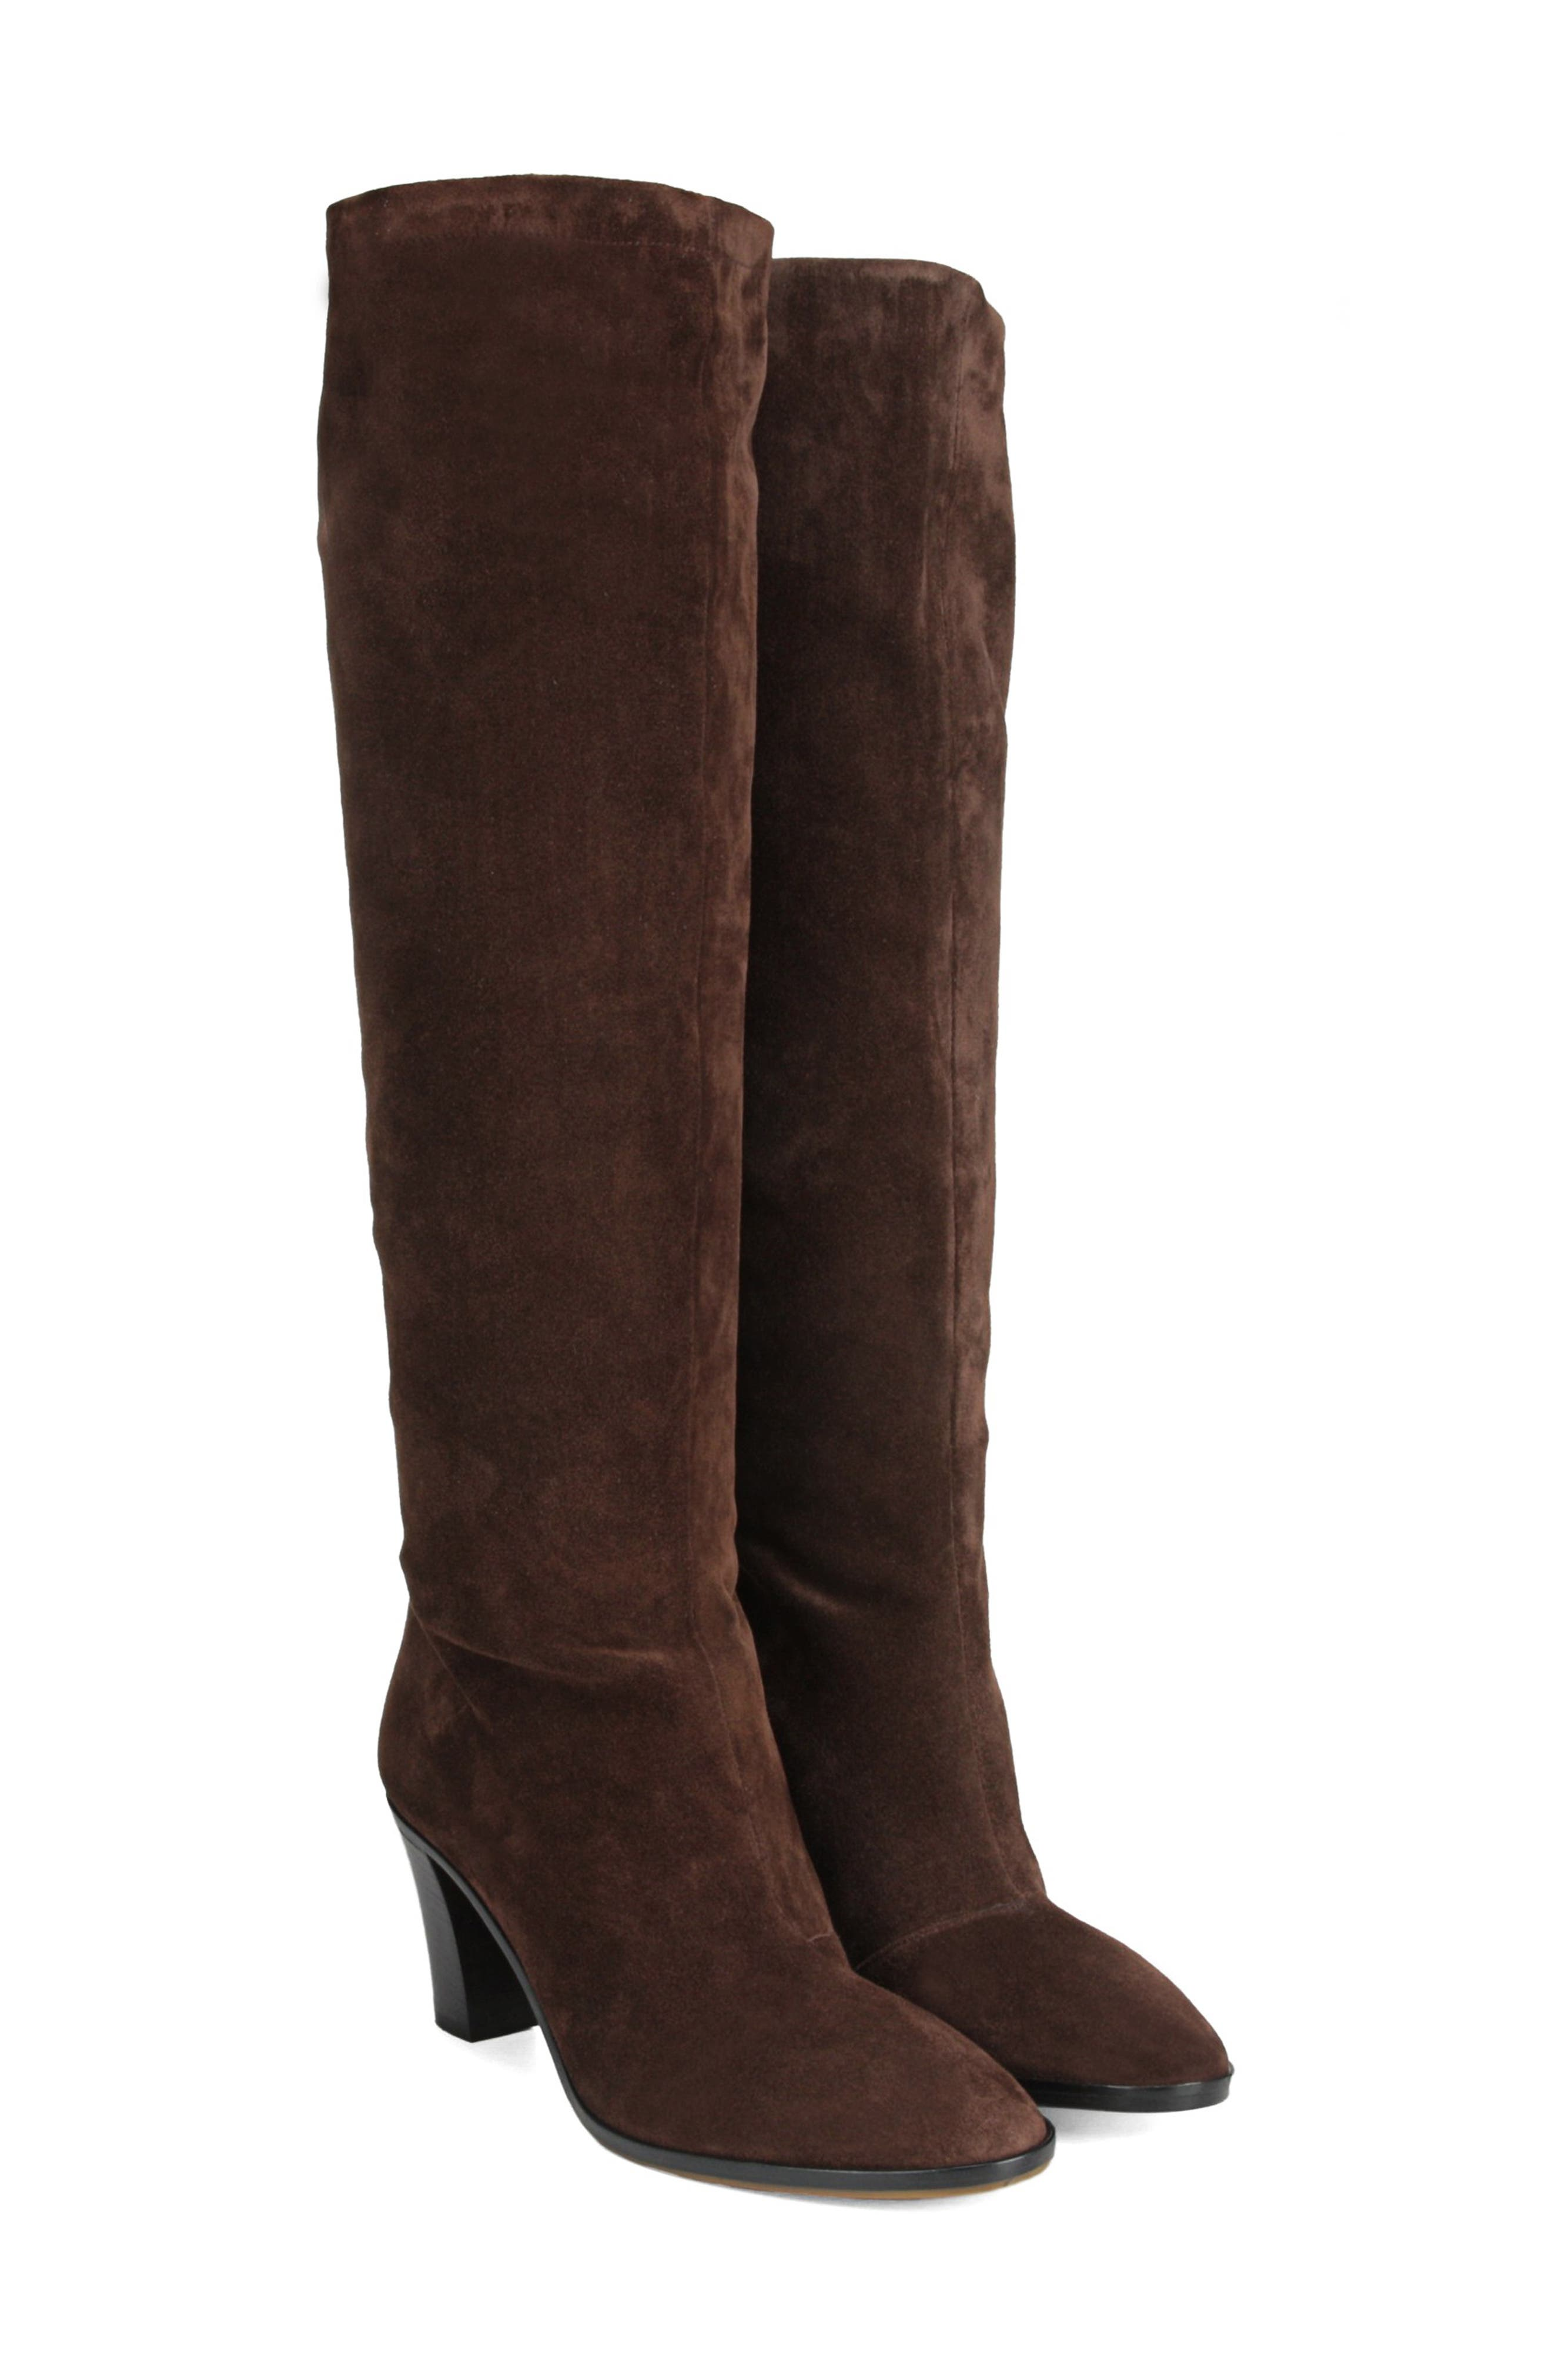 Casper Knee High Pull-On Boot,                             Alternate thumbnail 7, color,                             COTTO BROWN